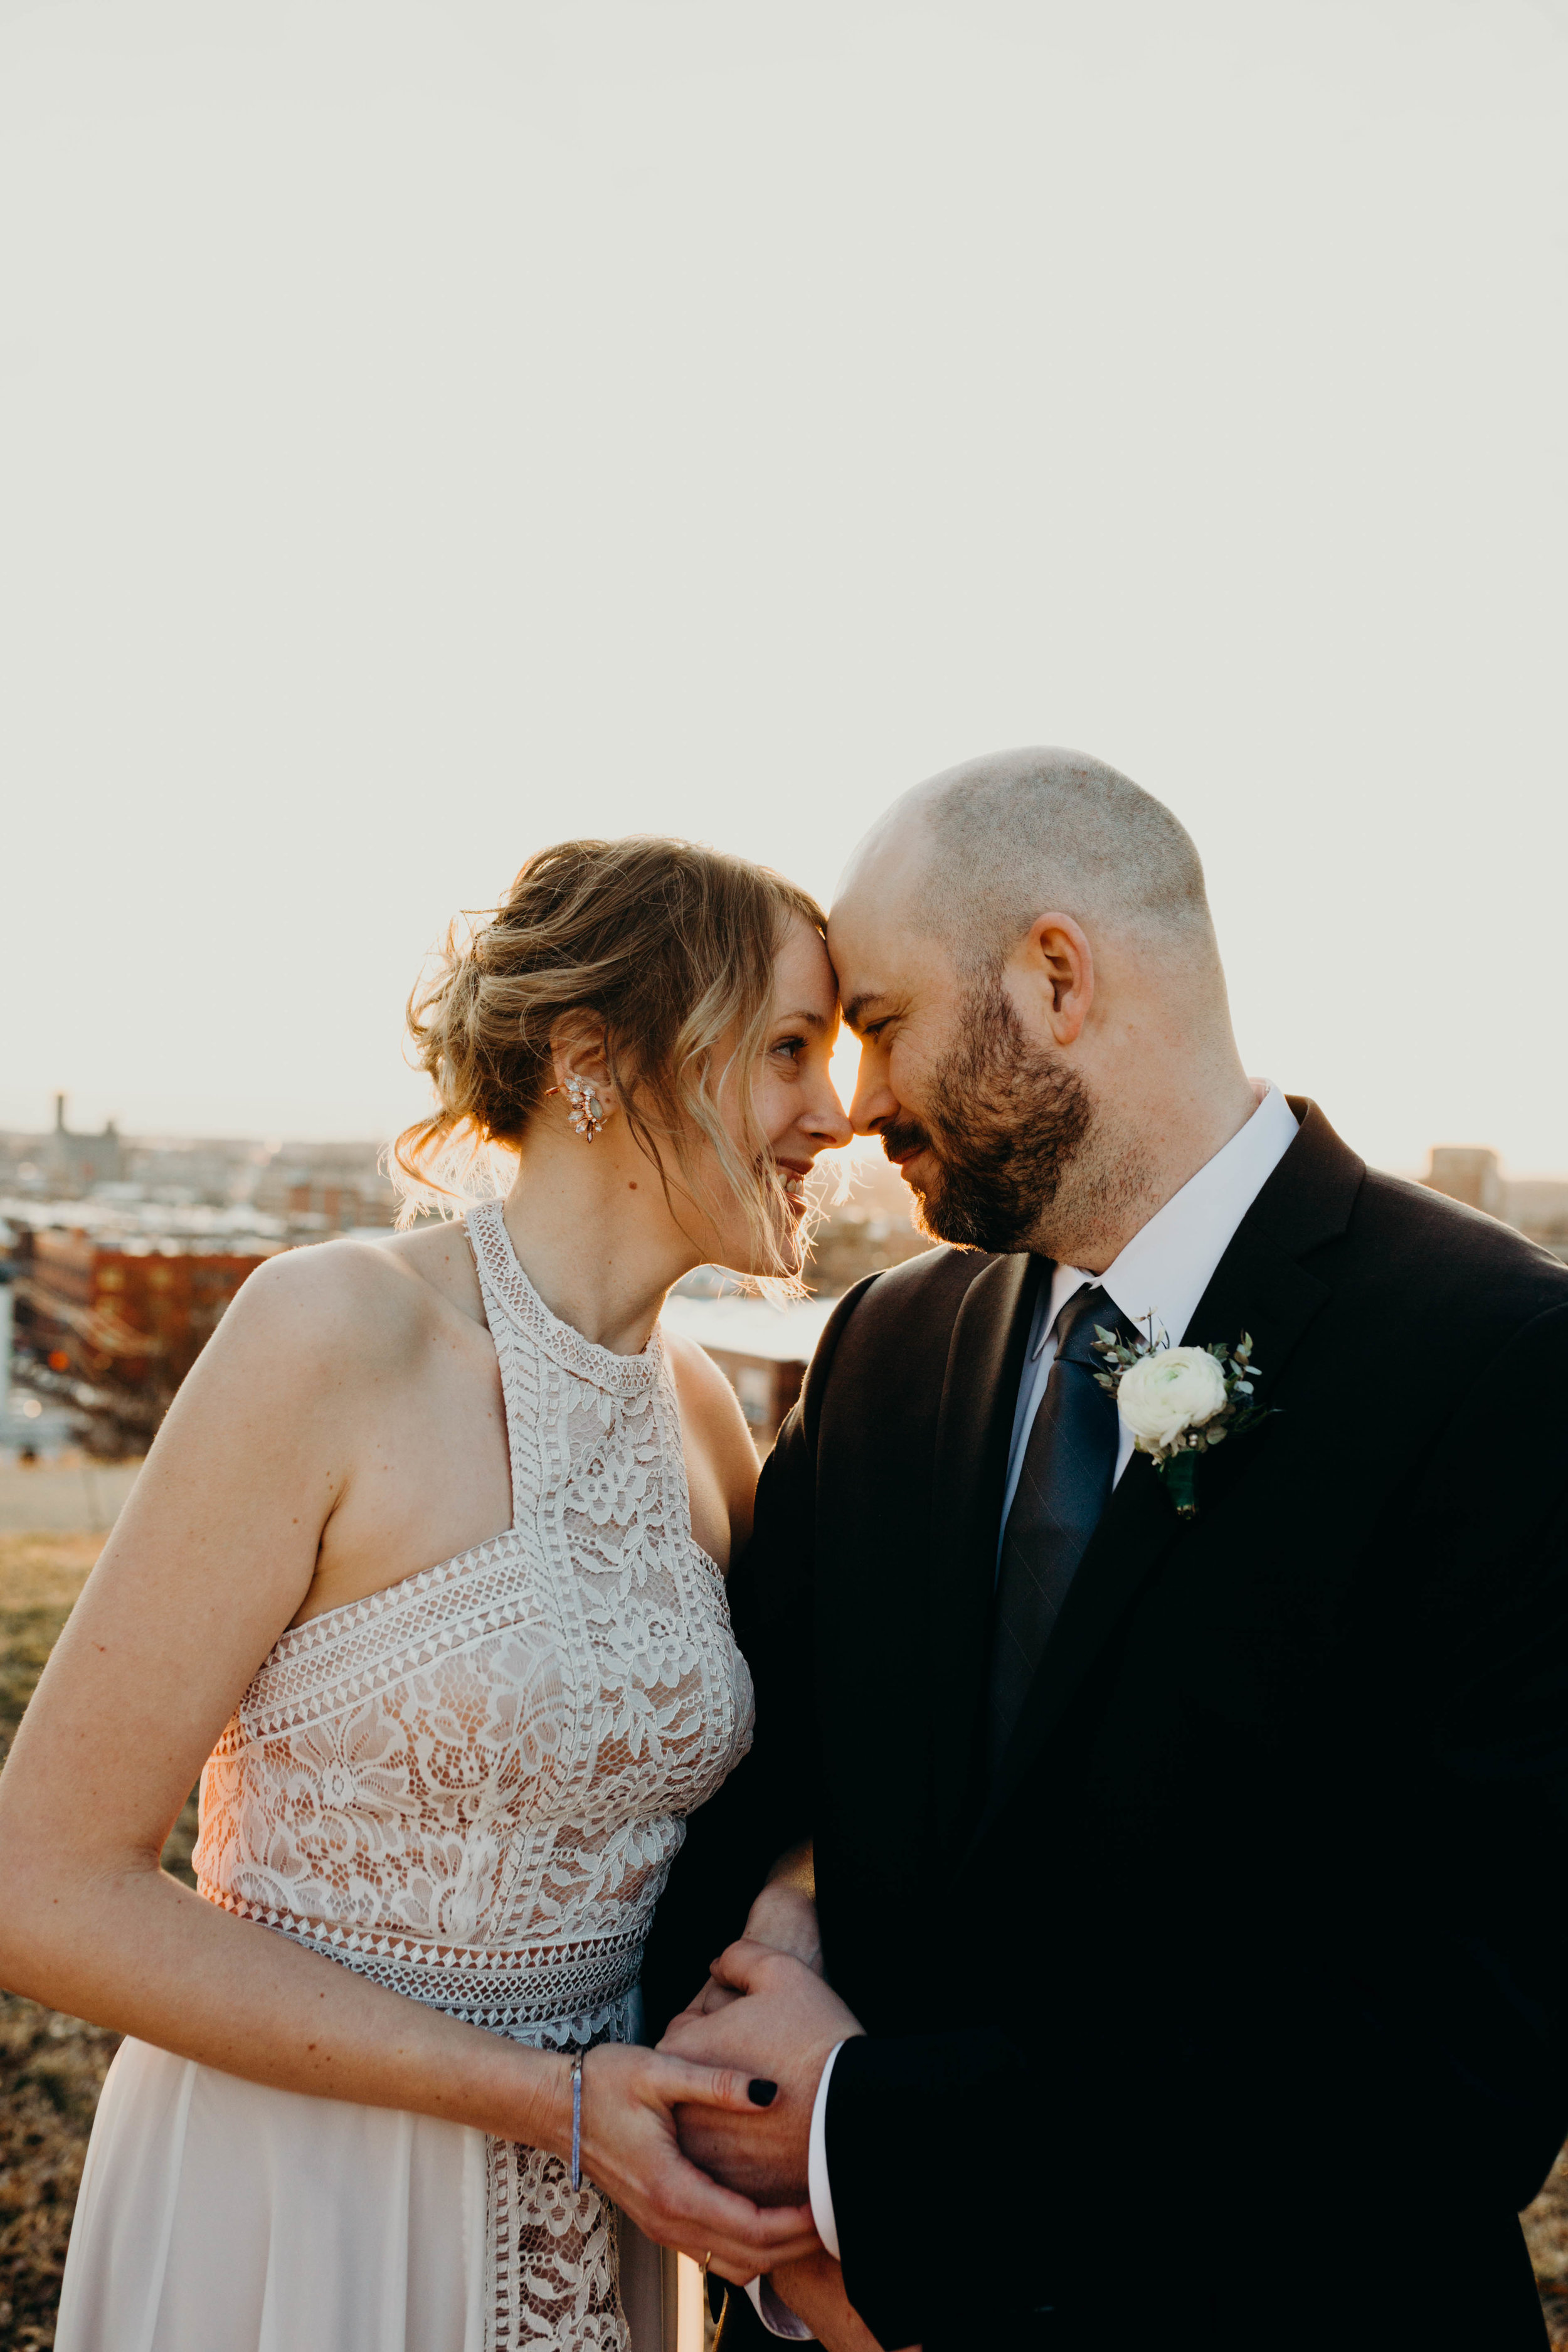 p.s. if your prioritize golden hour portraits when planning your wedding timeline, your photos will turn out SO much better!